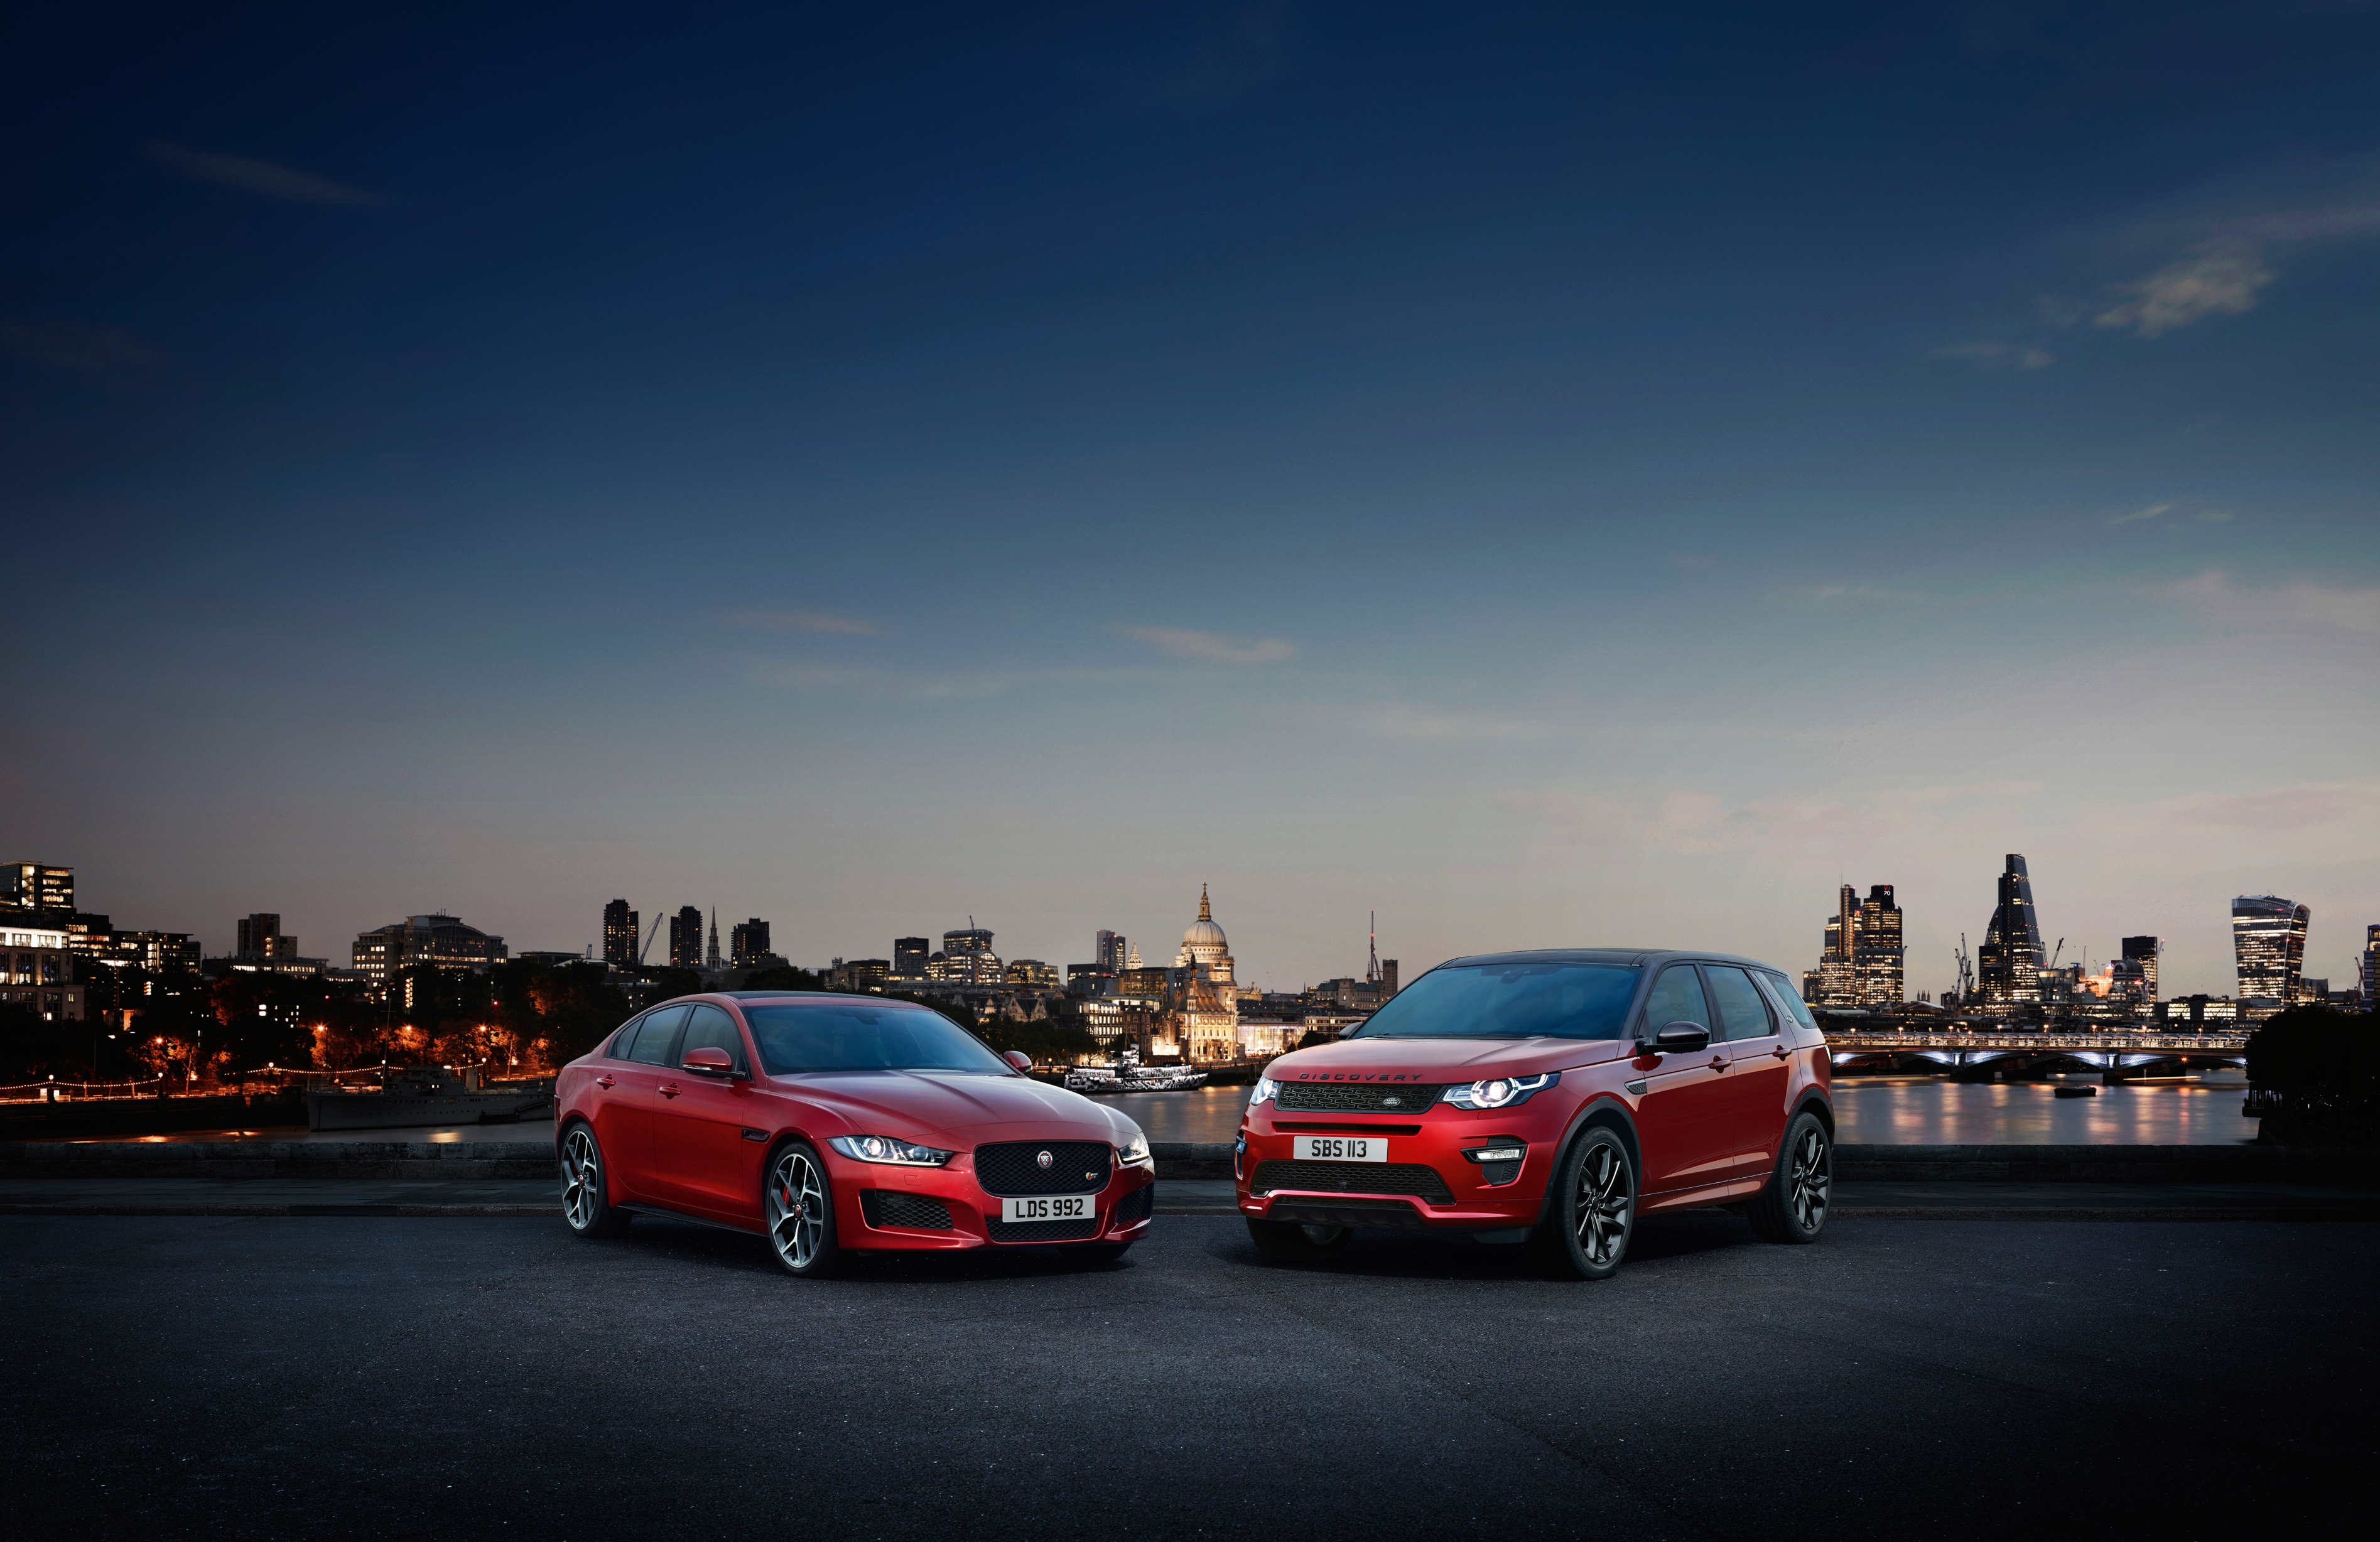 Jaguar Land Rover Limited Royal Warrant Holders Association